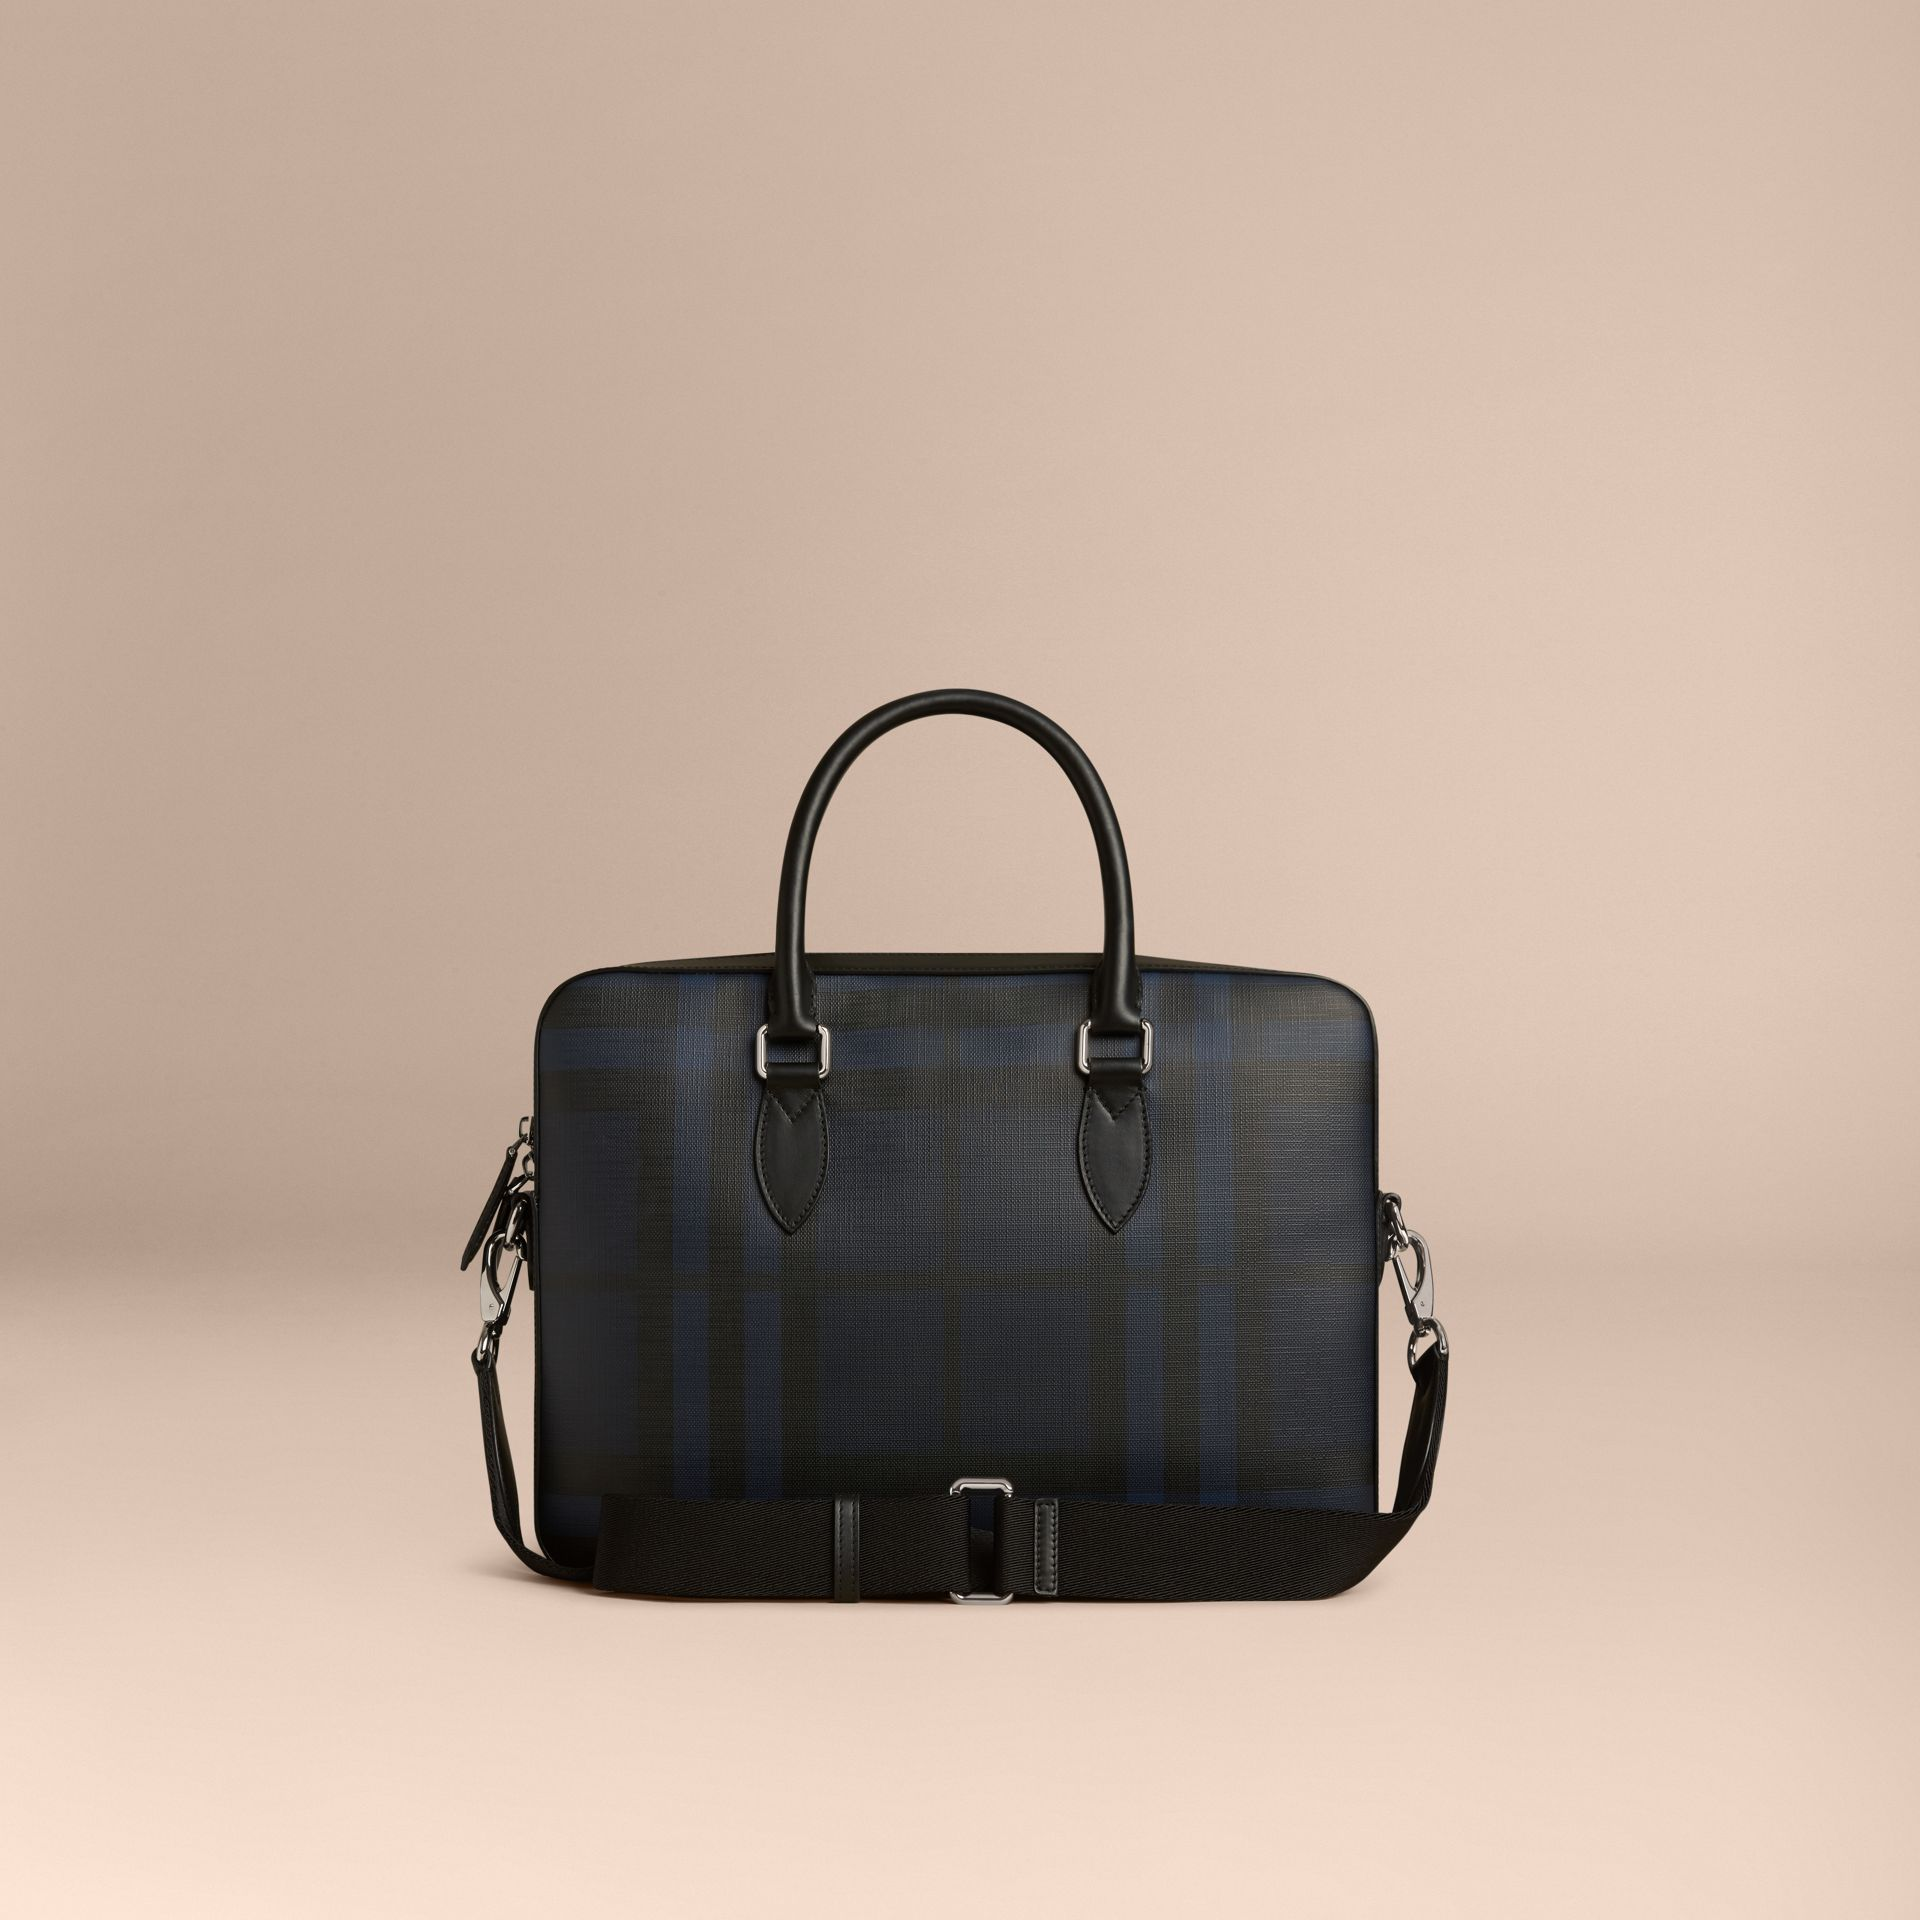 Medium Leather Trim London Check Briefcase in Navy/black - Men | Burberry - gallery image 8